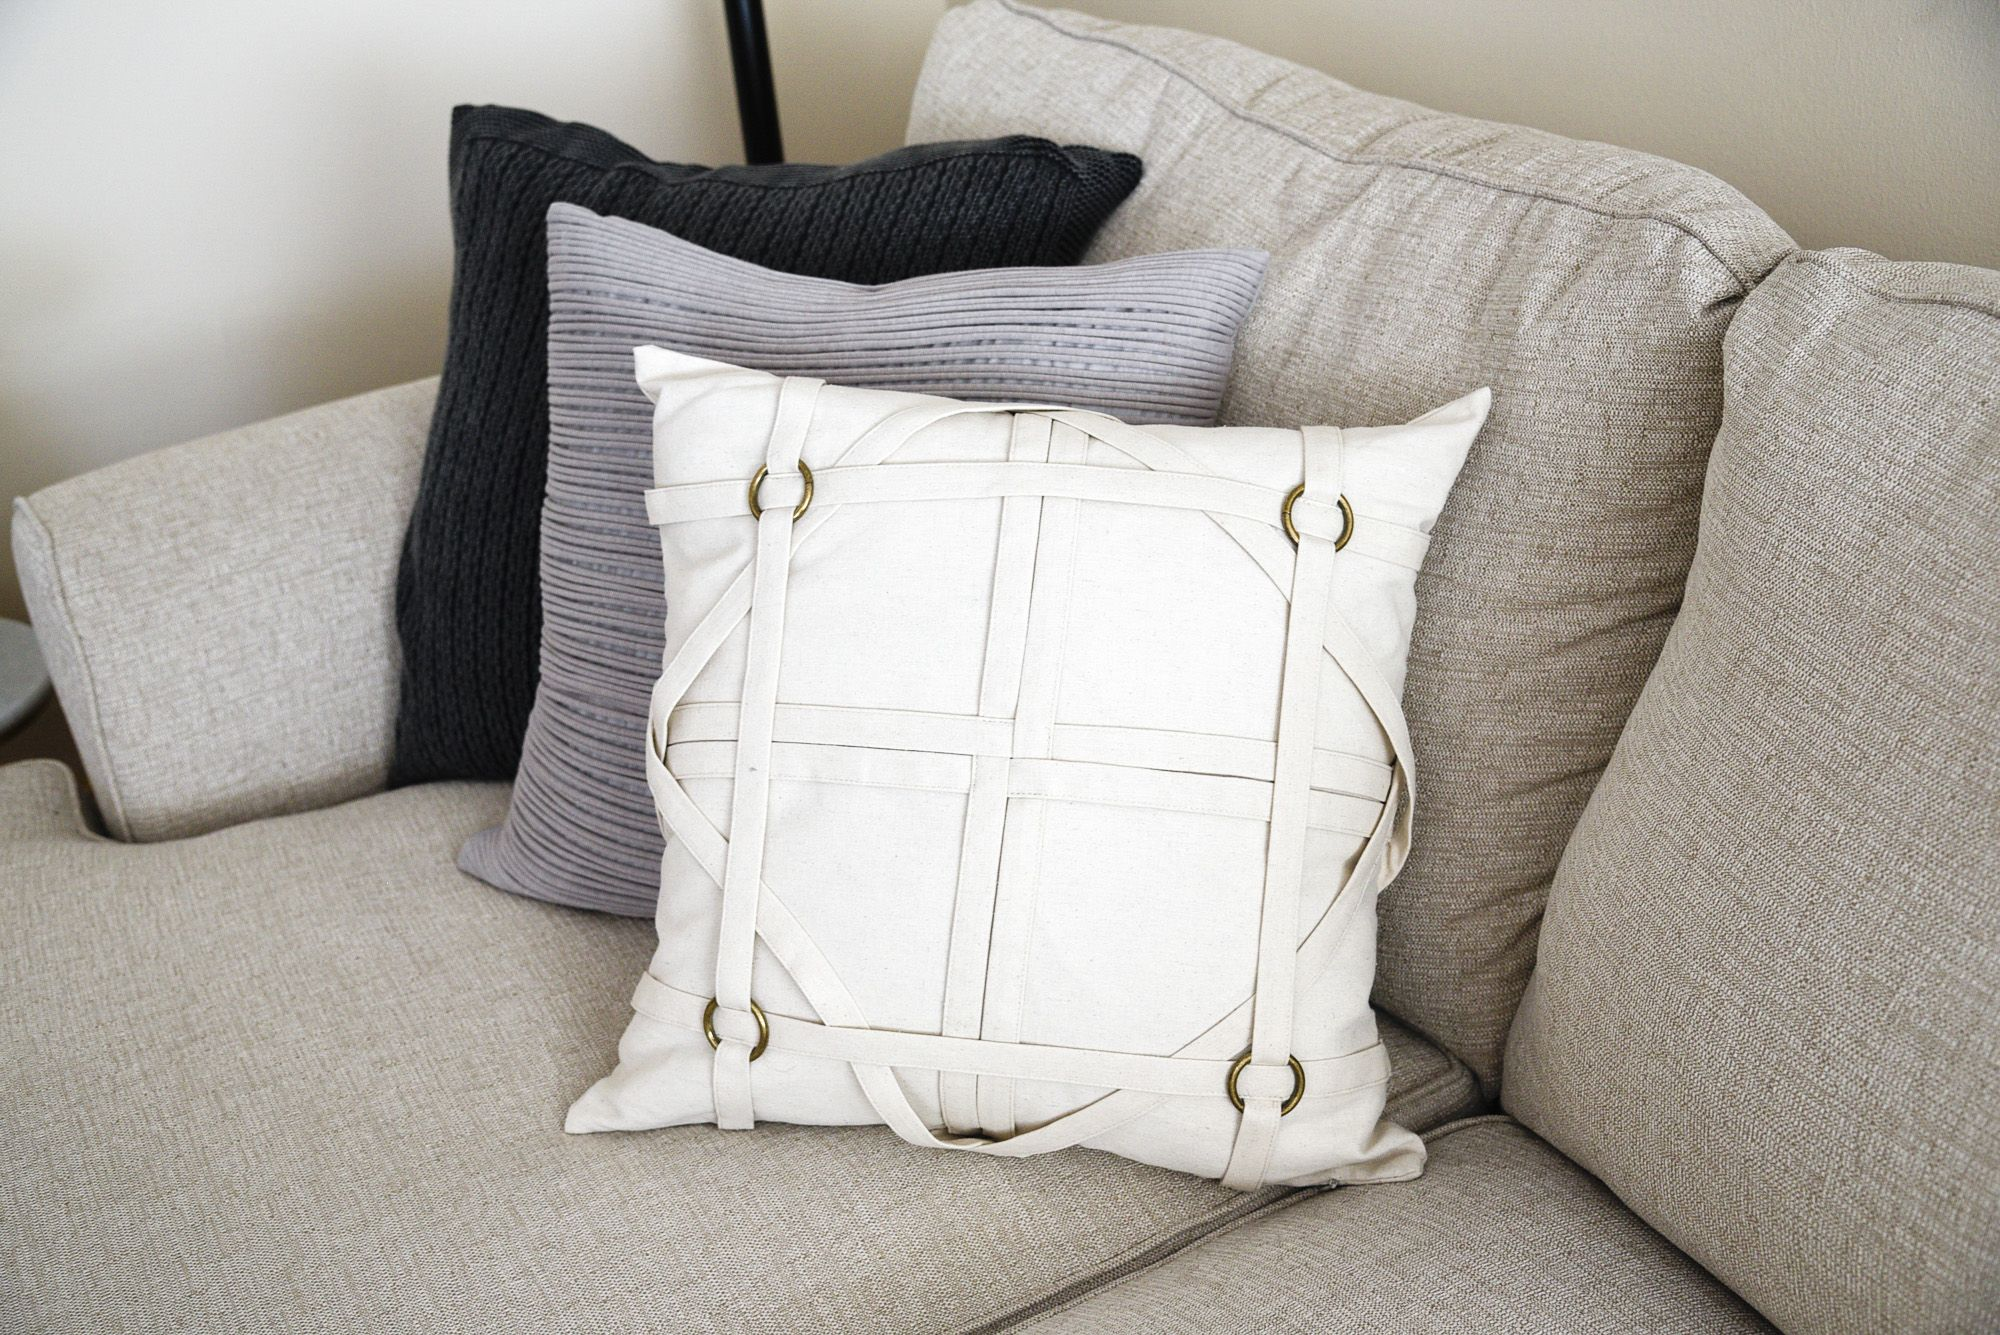 Mix and match accent pillows